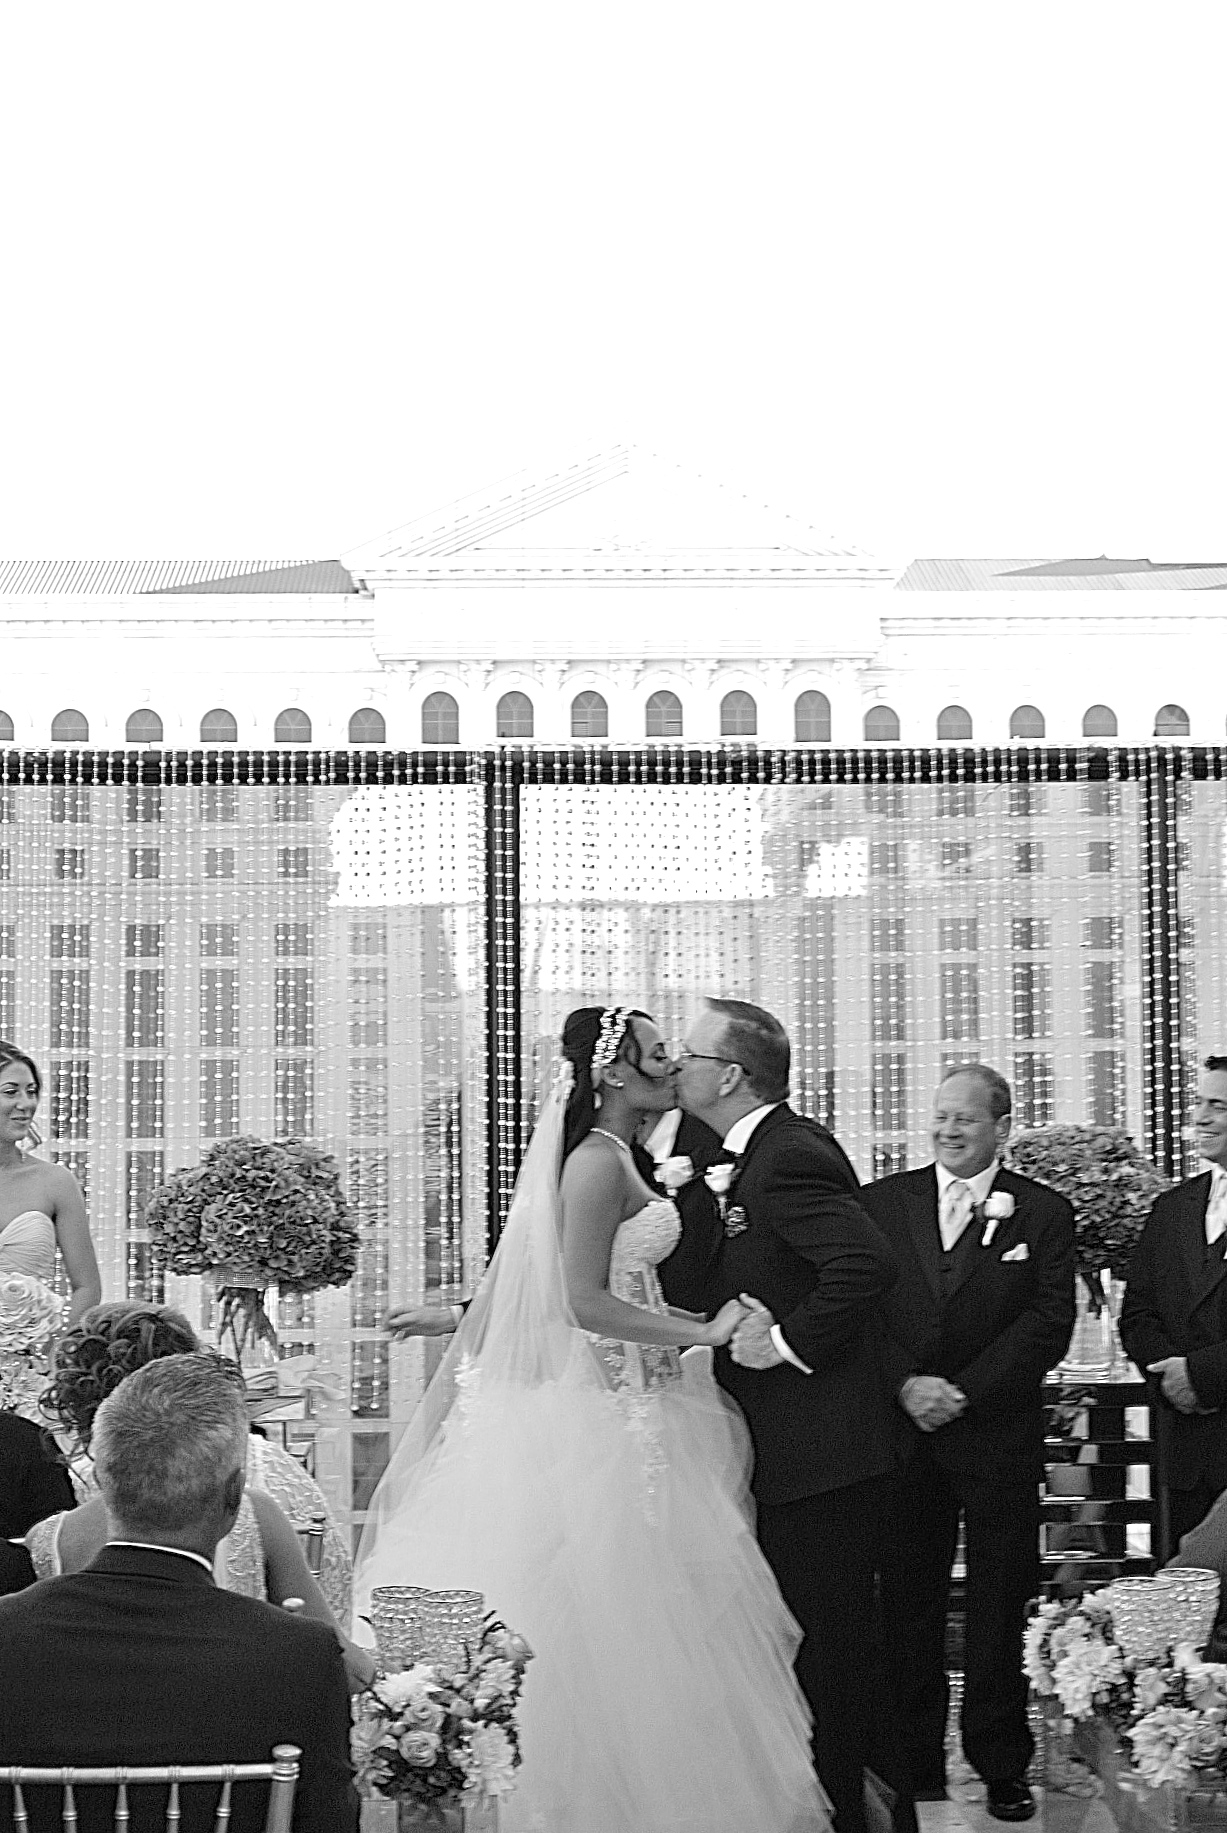 You may kiss the bride!   Las Vegas Wedding Planner:  Andrea Eppolito Events  | Las Vegas Wedding Venue:   Caesars Palace  | Floral and Decor:   Naakiti Floral & Sit On This  | Wedding Gown:  Pnina Torna  i | Behind the Scenes Photos:   Andrea Eppolito